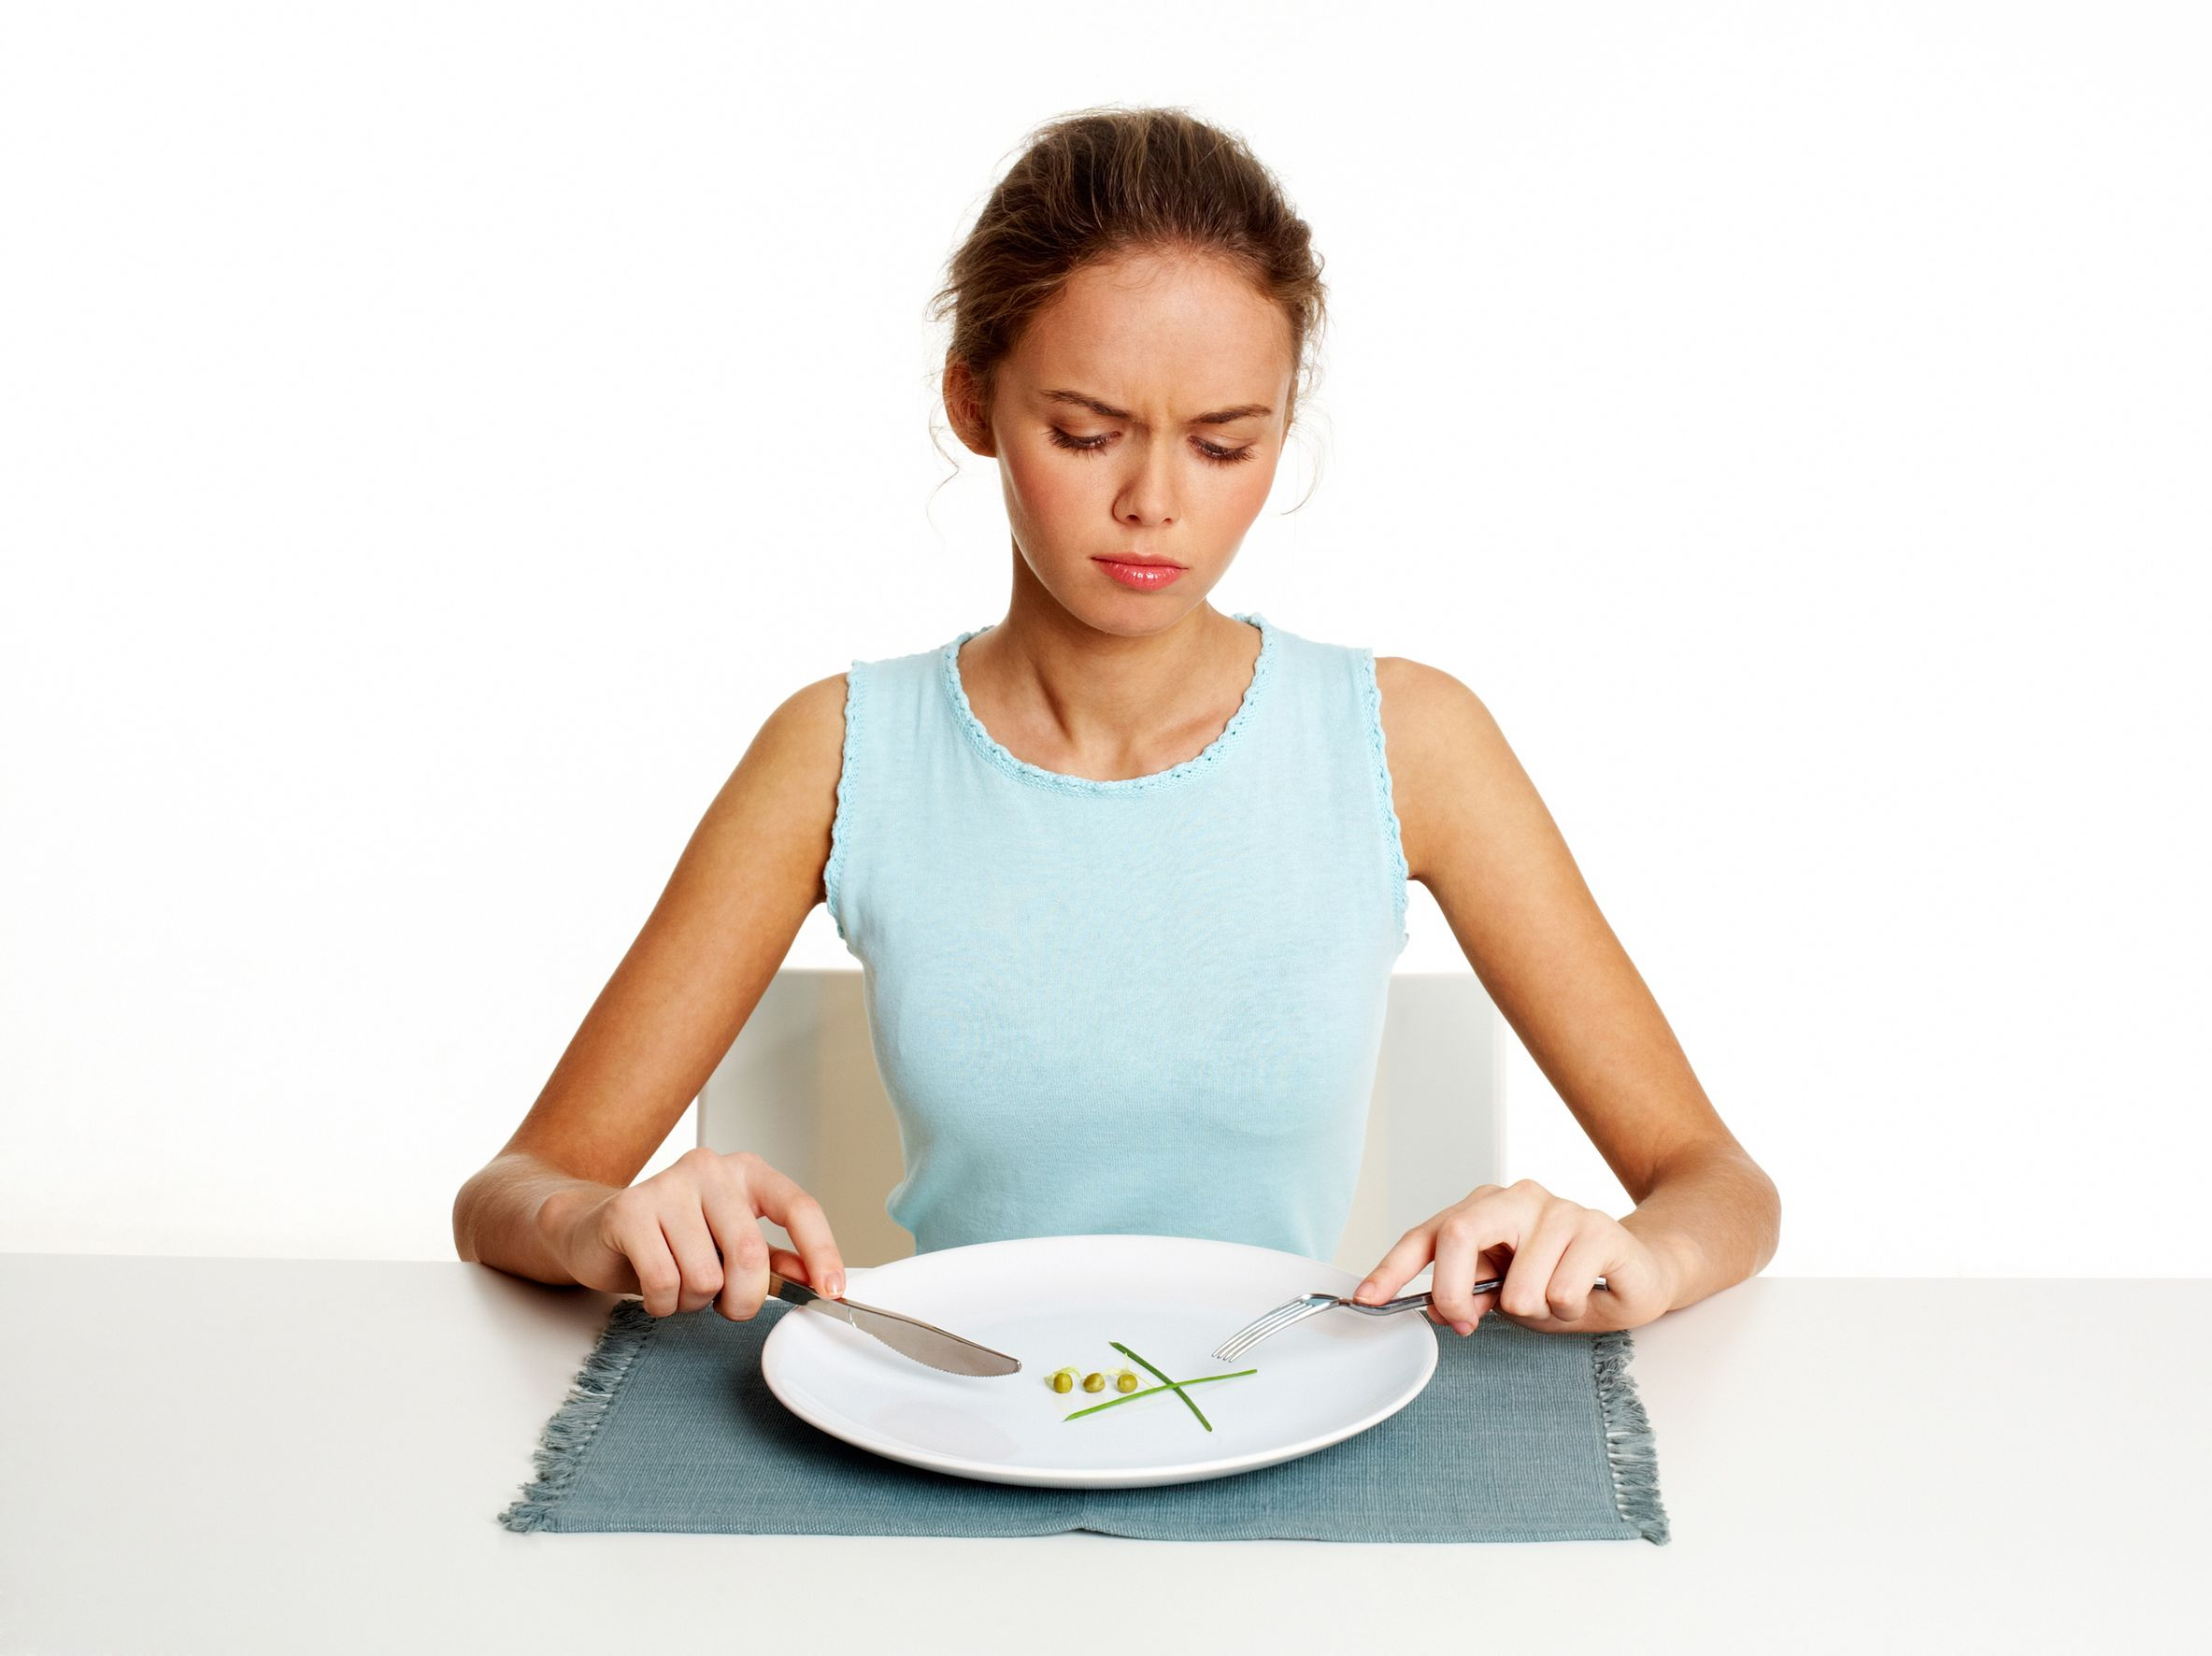 18729434 - unhappy young woman dieting with peas and leeks, isolated against white